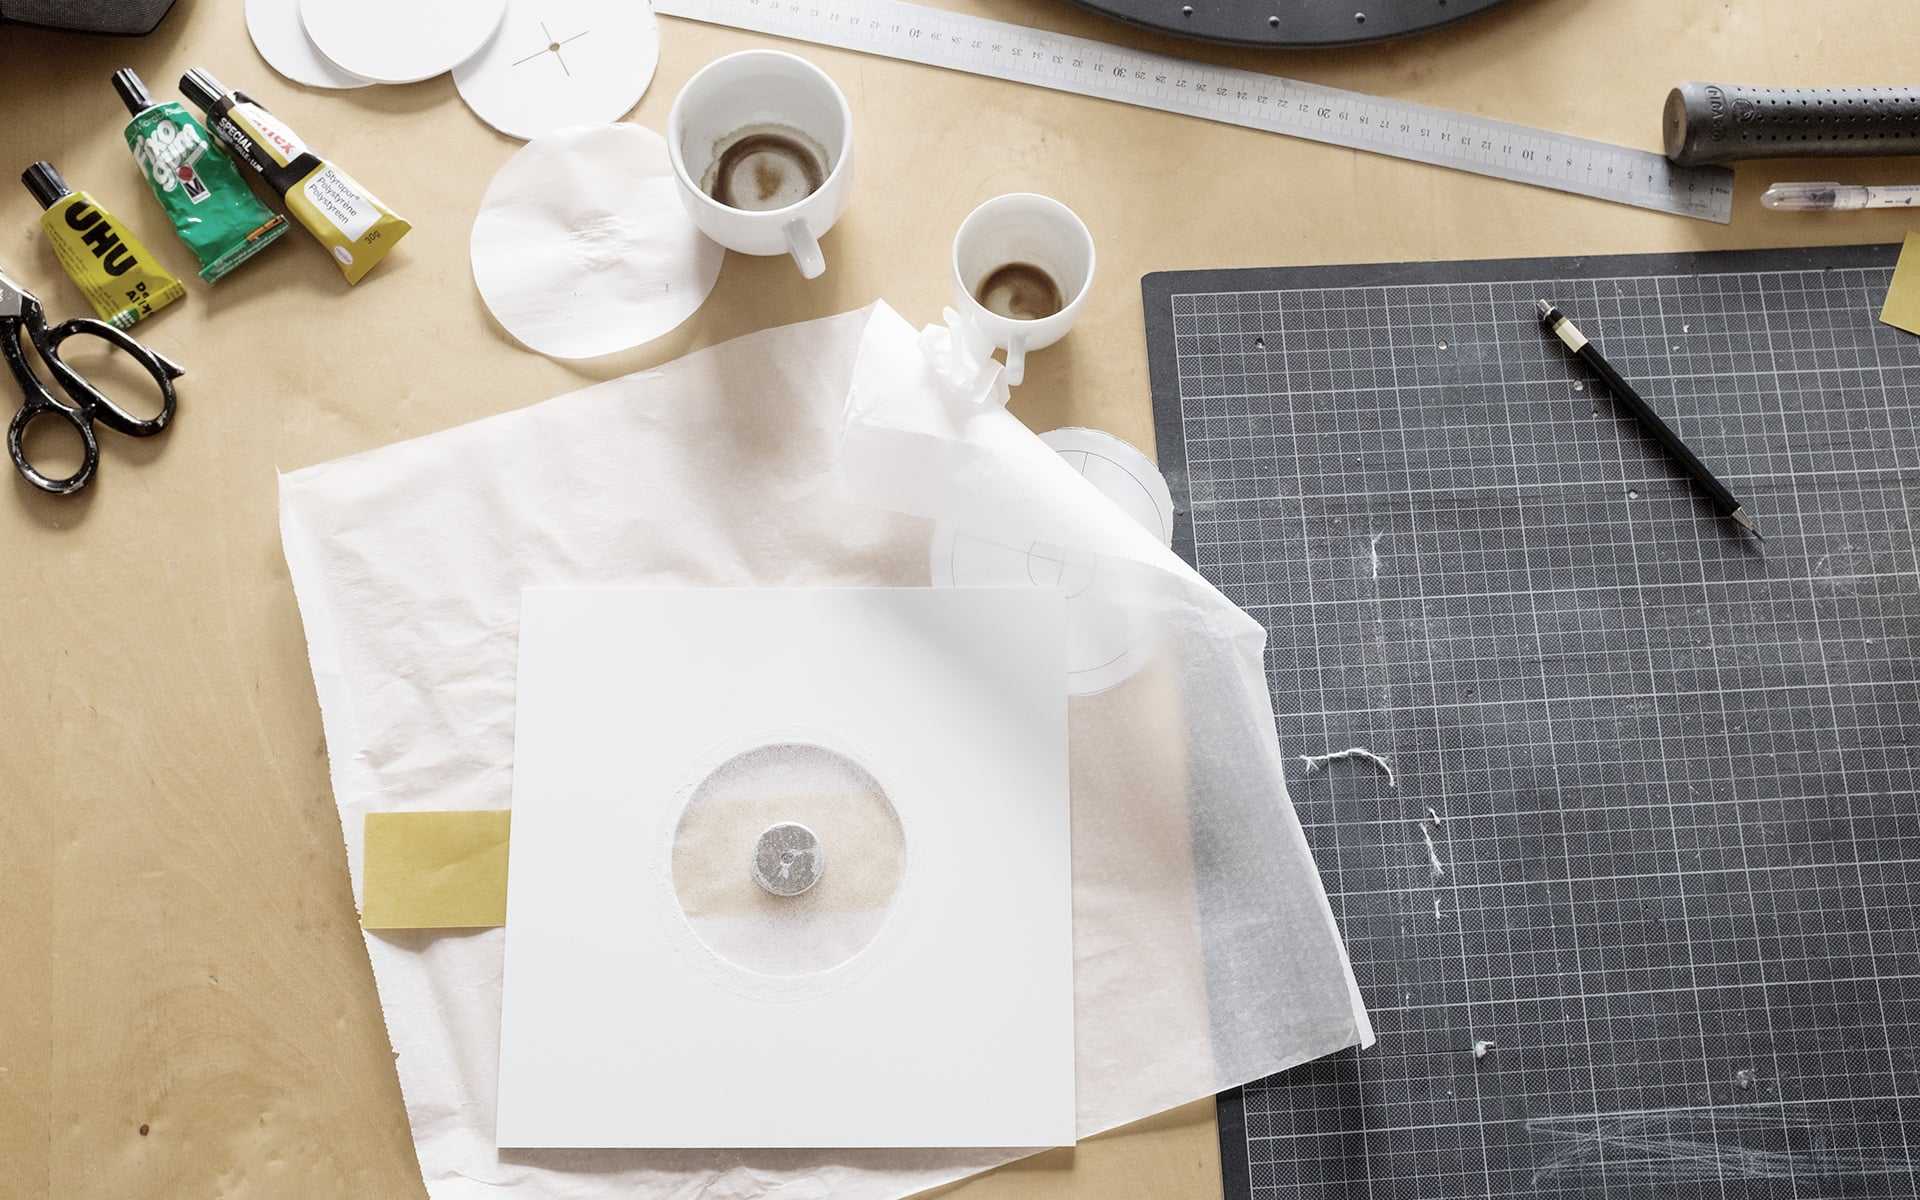 Work surface with mold for magnet disk, working utensils and empty coffee cups at ITO Design